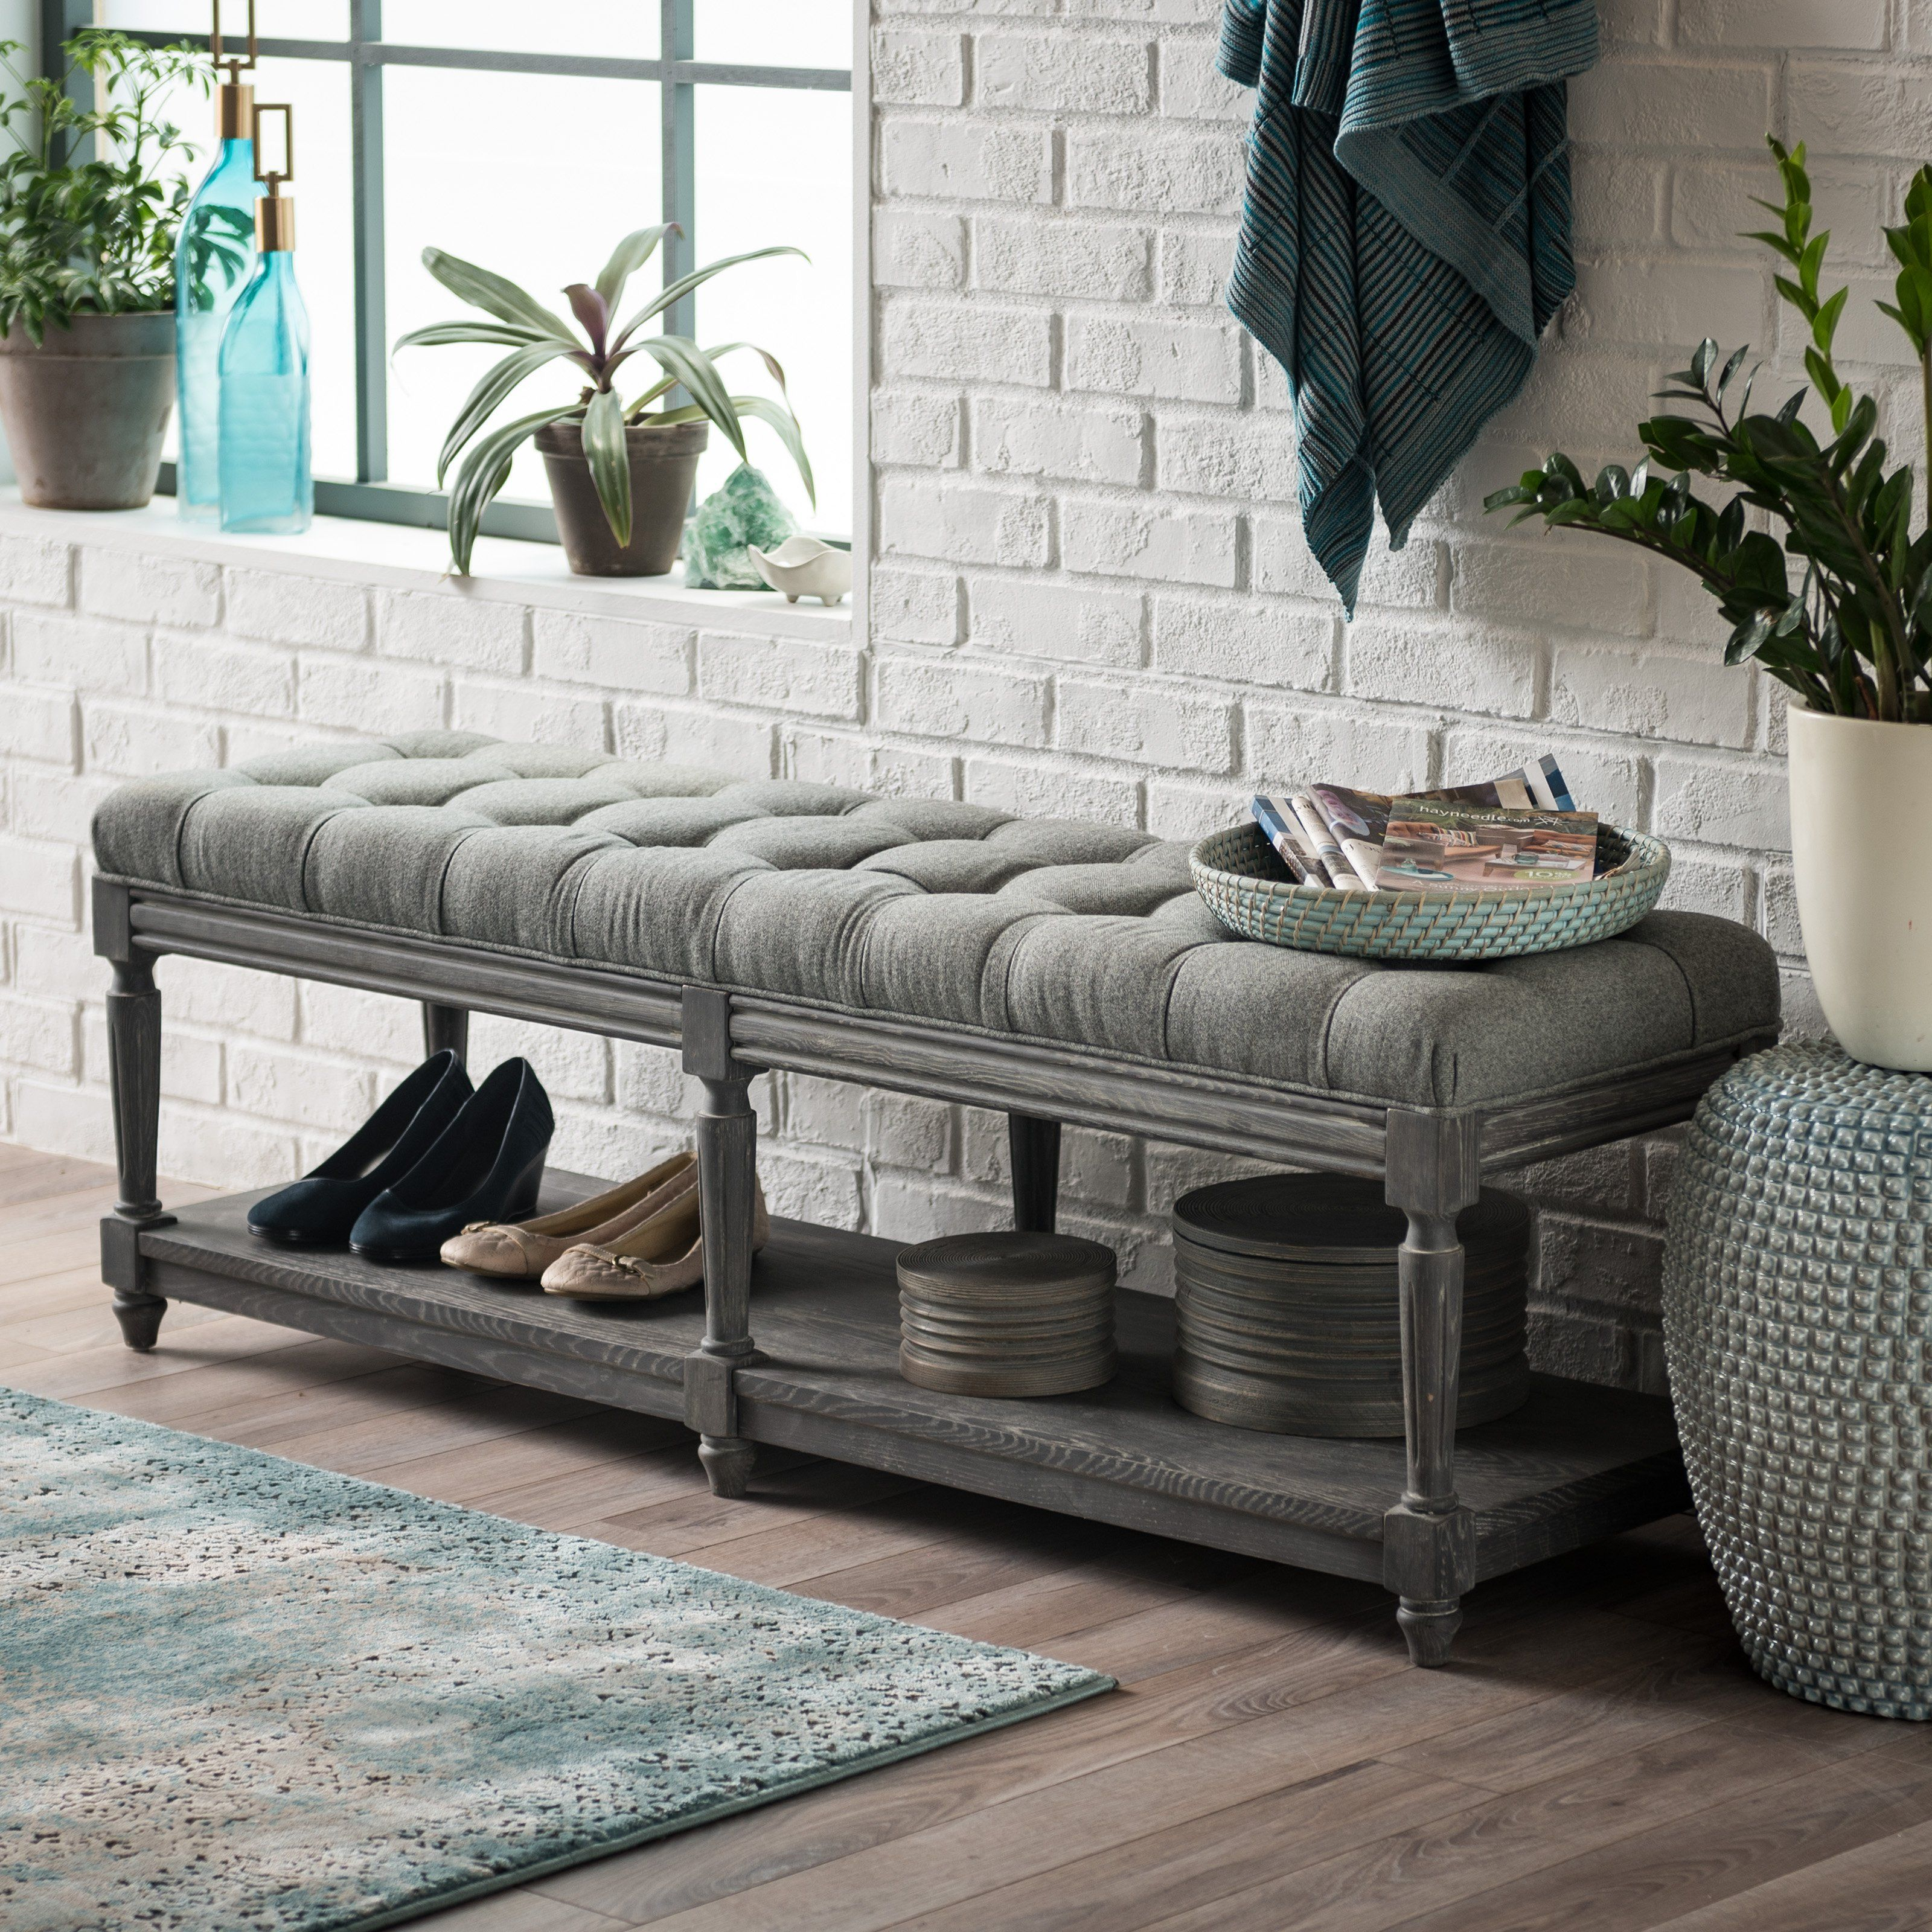 A Seat Doubles As Storage Space With The Belham Living Reagan